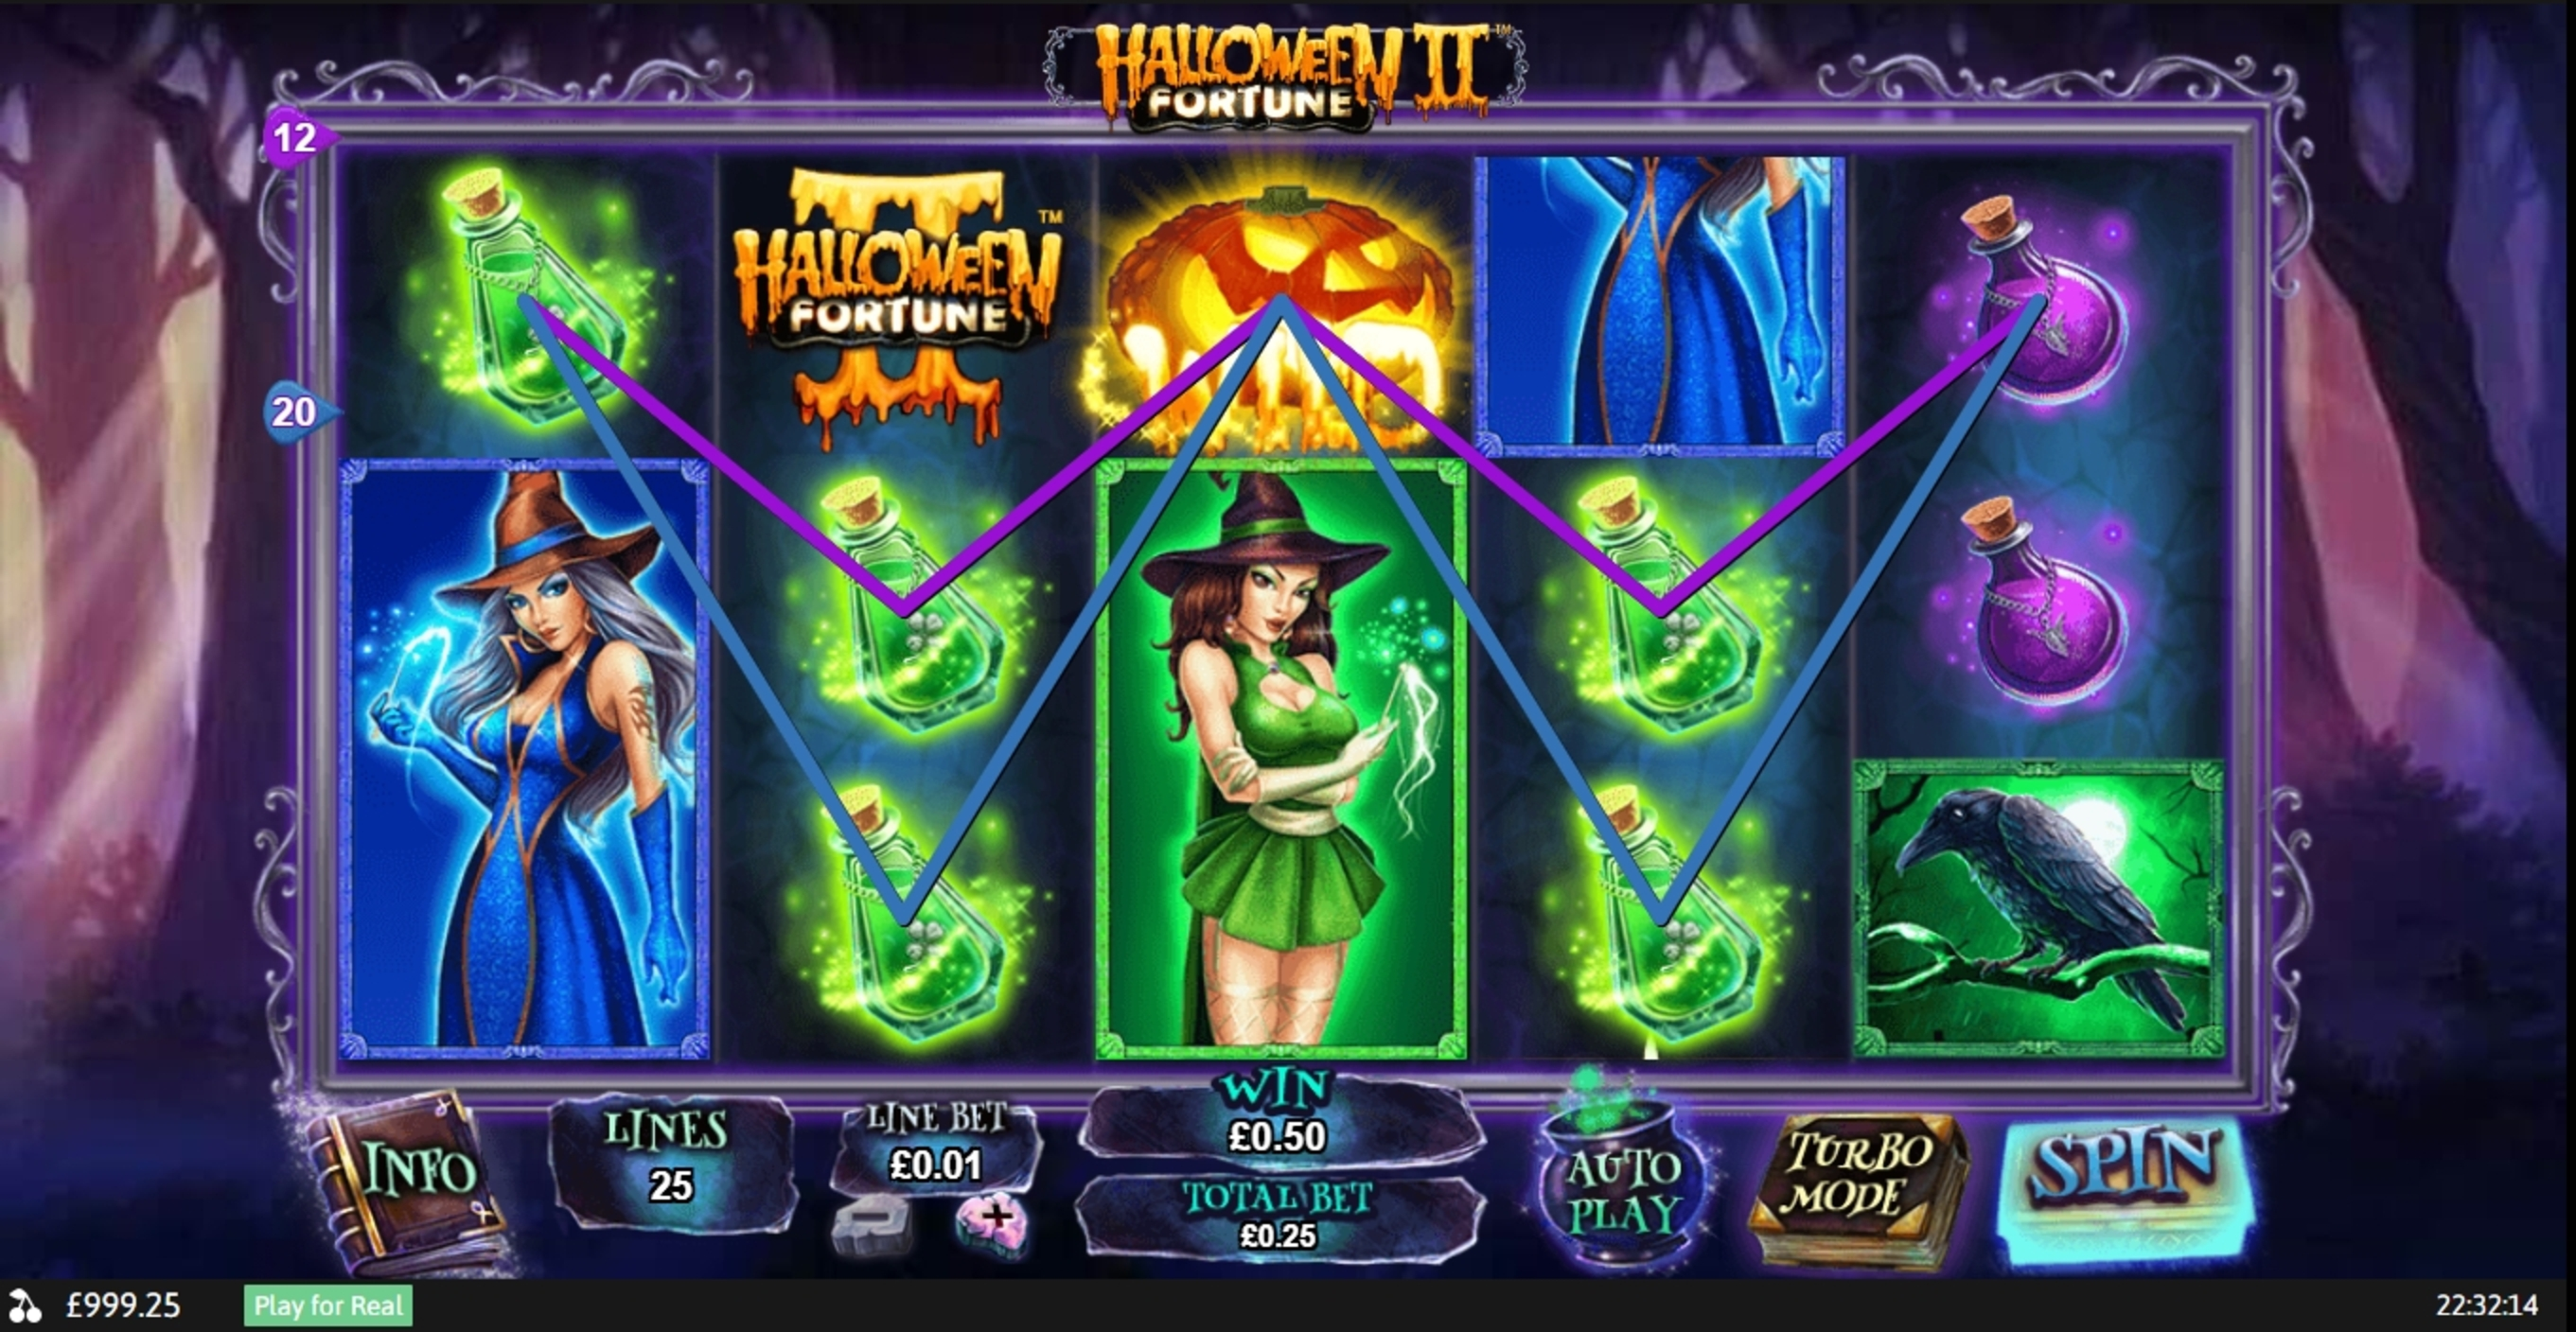 Win Money in Halloween Fortune II Free Slot Game by Playtech